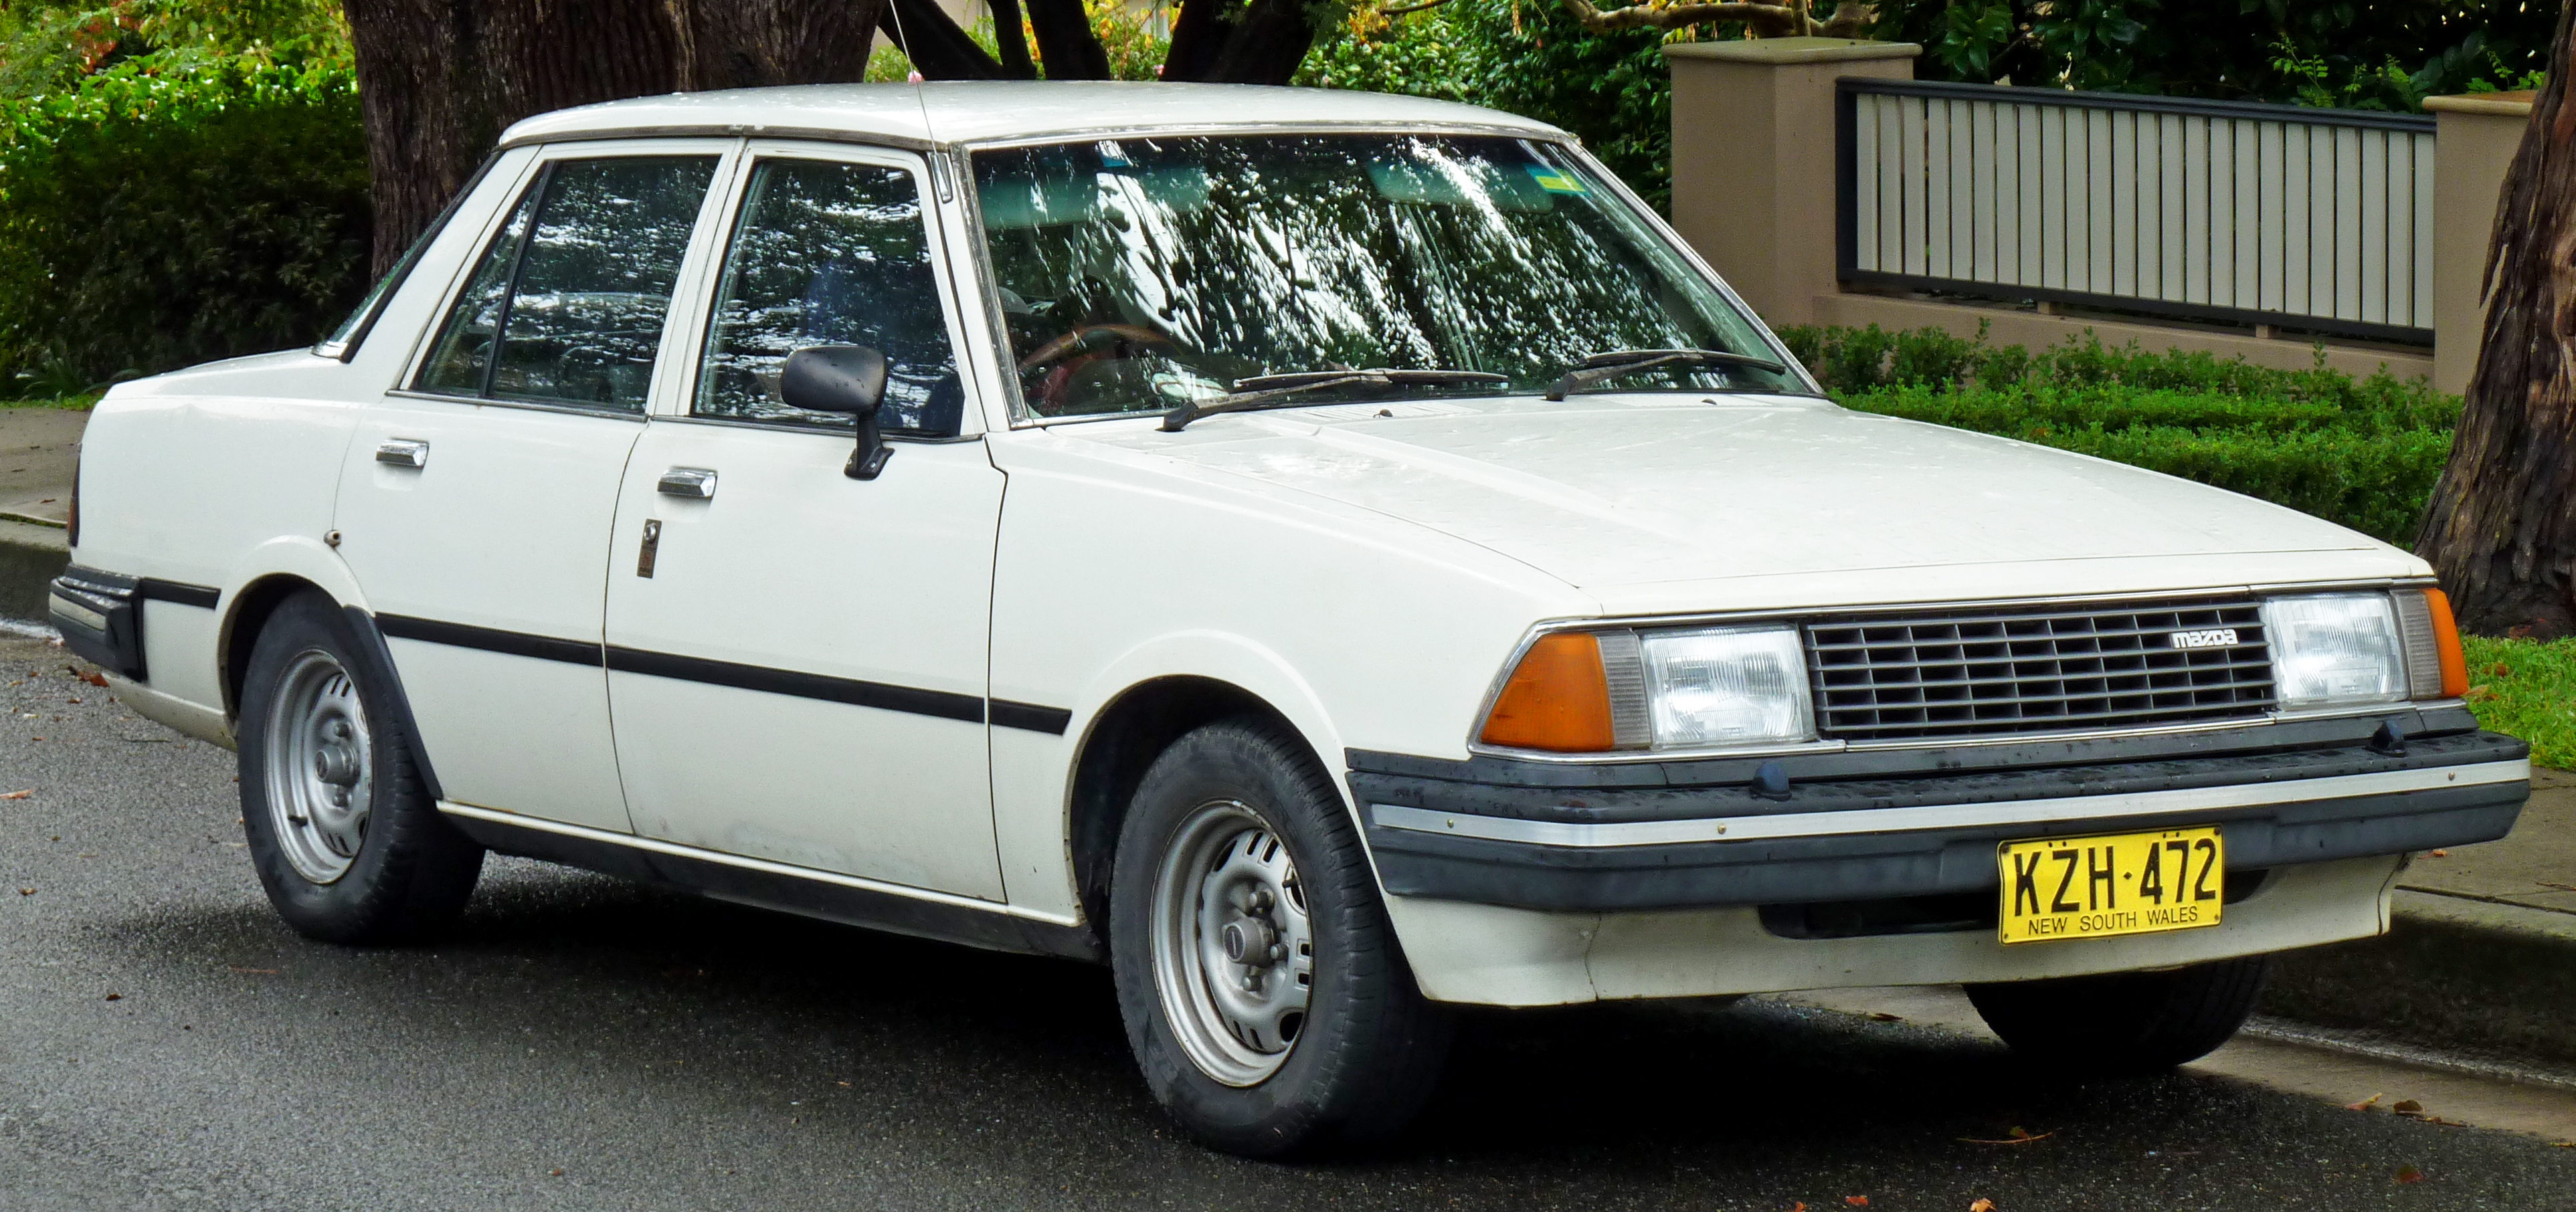 Mazda 626 I (CB) 1978 - 1982 Sedan :: OUTSTANDING CARS